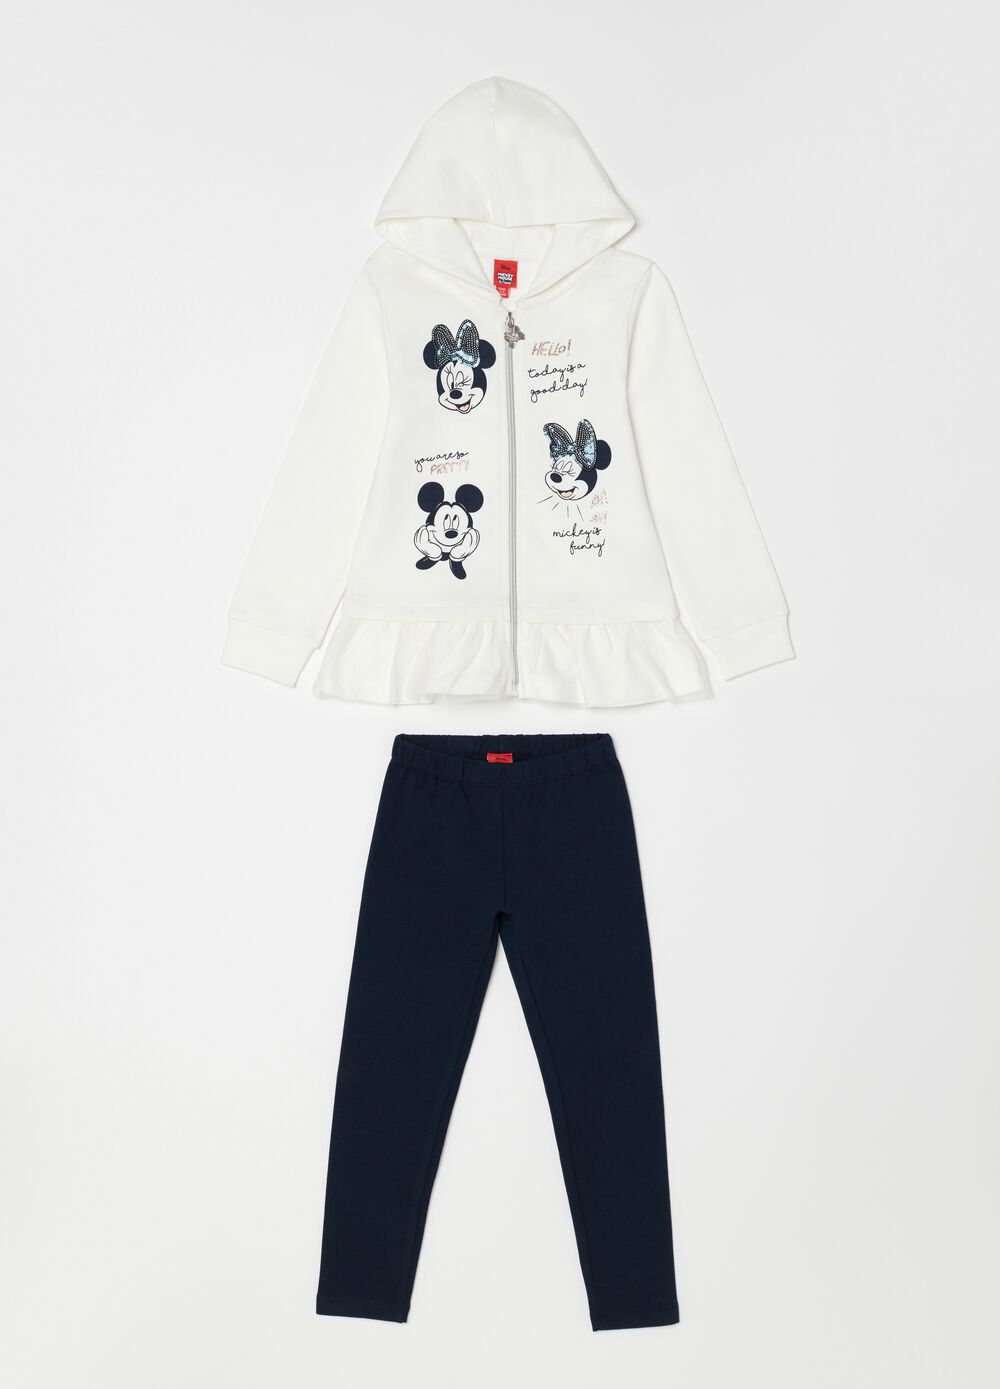 Disney Minnie and Mickey Mouse jogging set